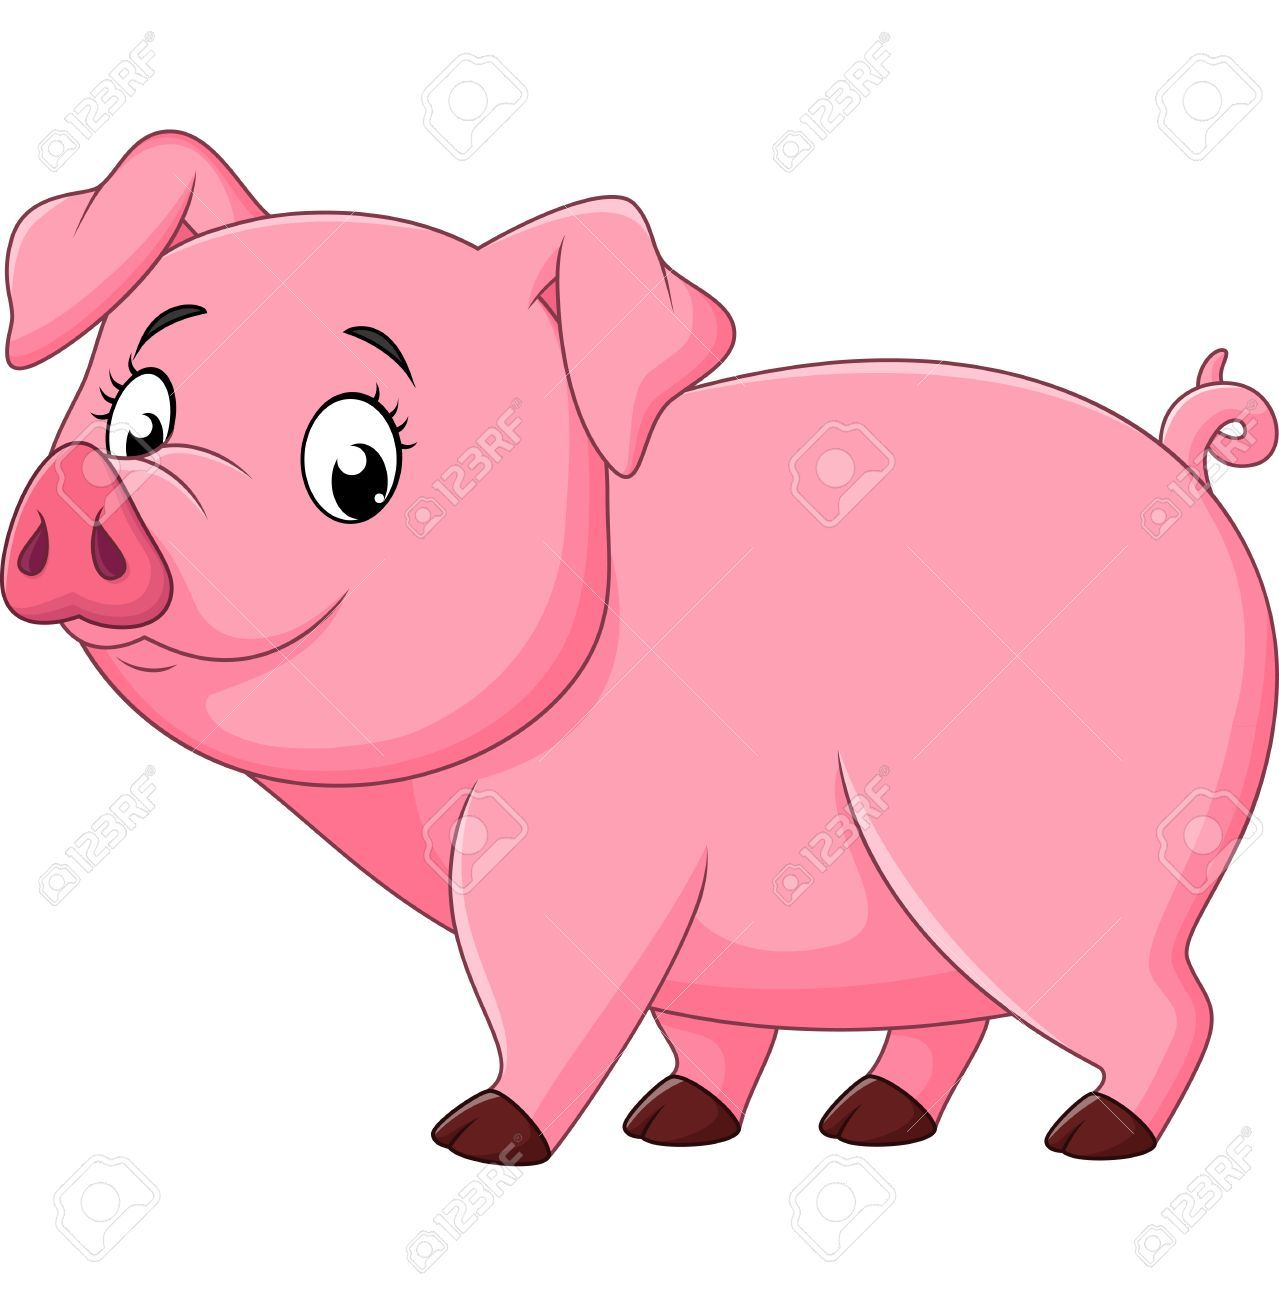 Happy pig clipart 4 » Clipart Portal.